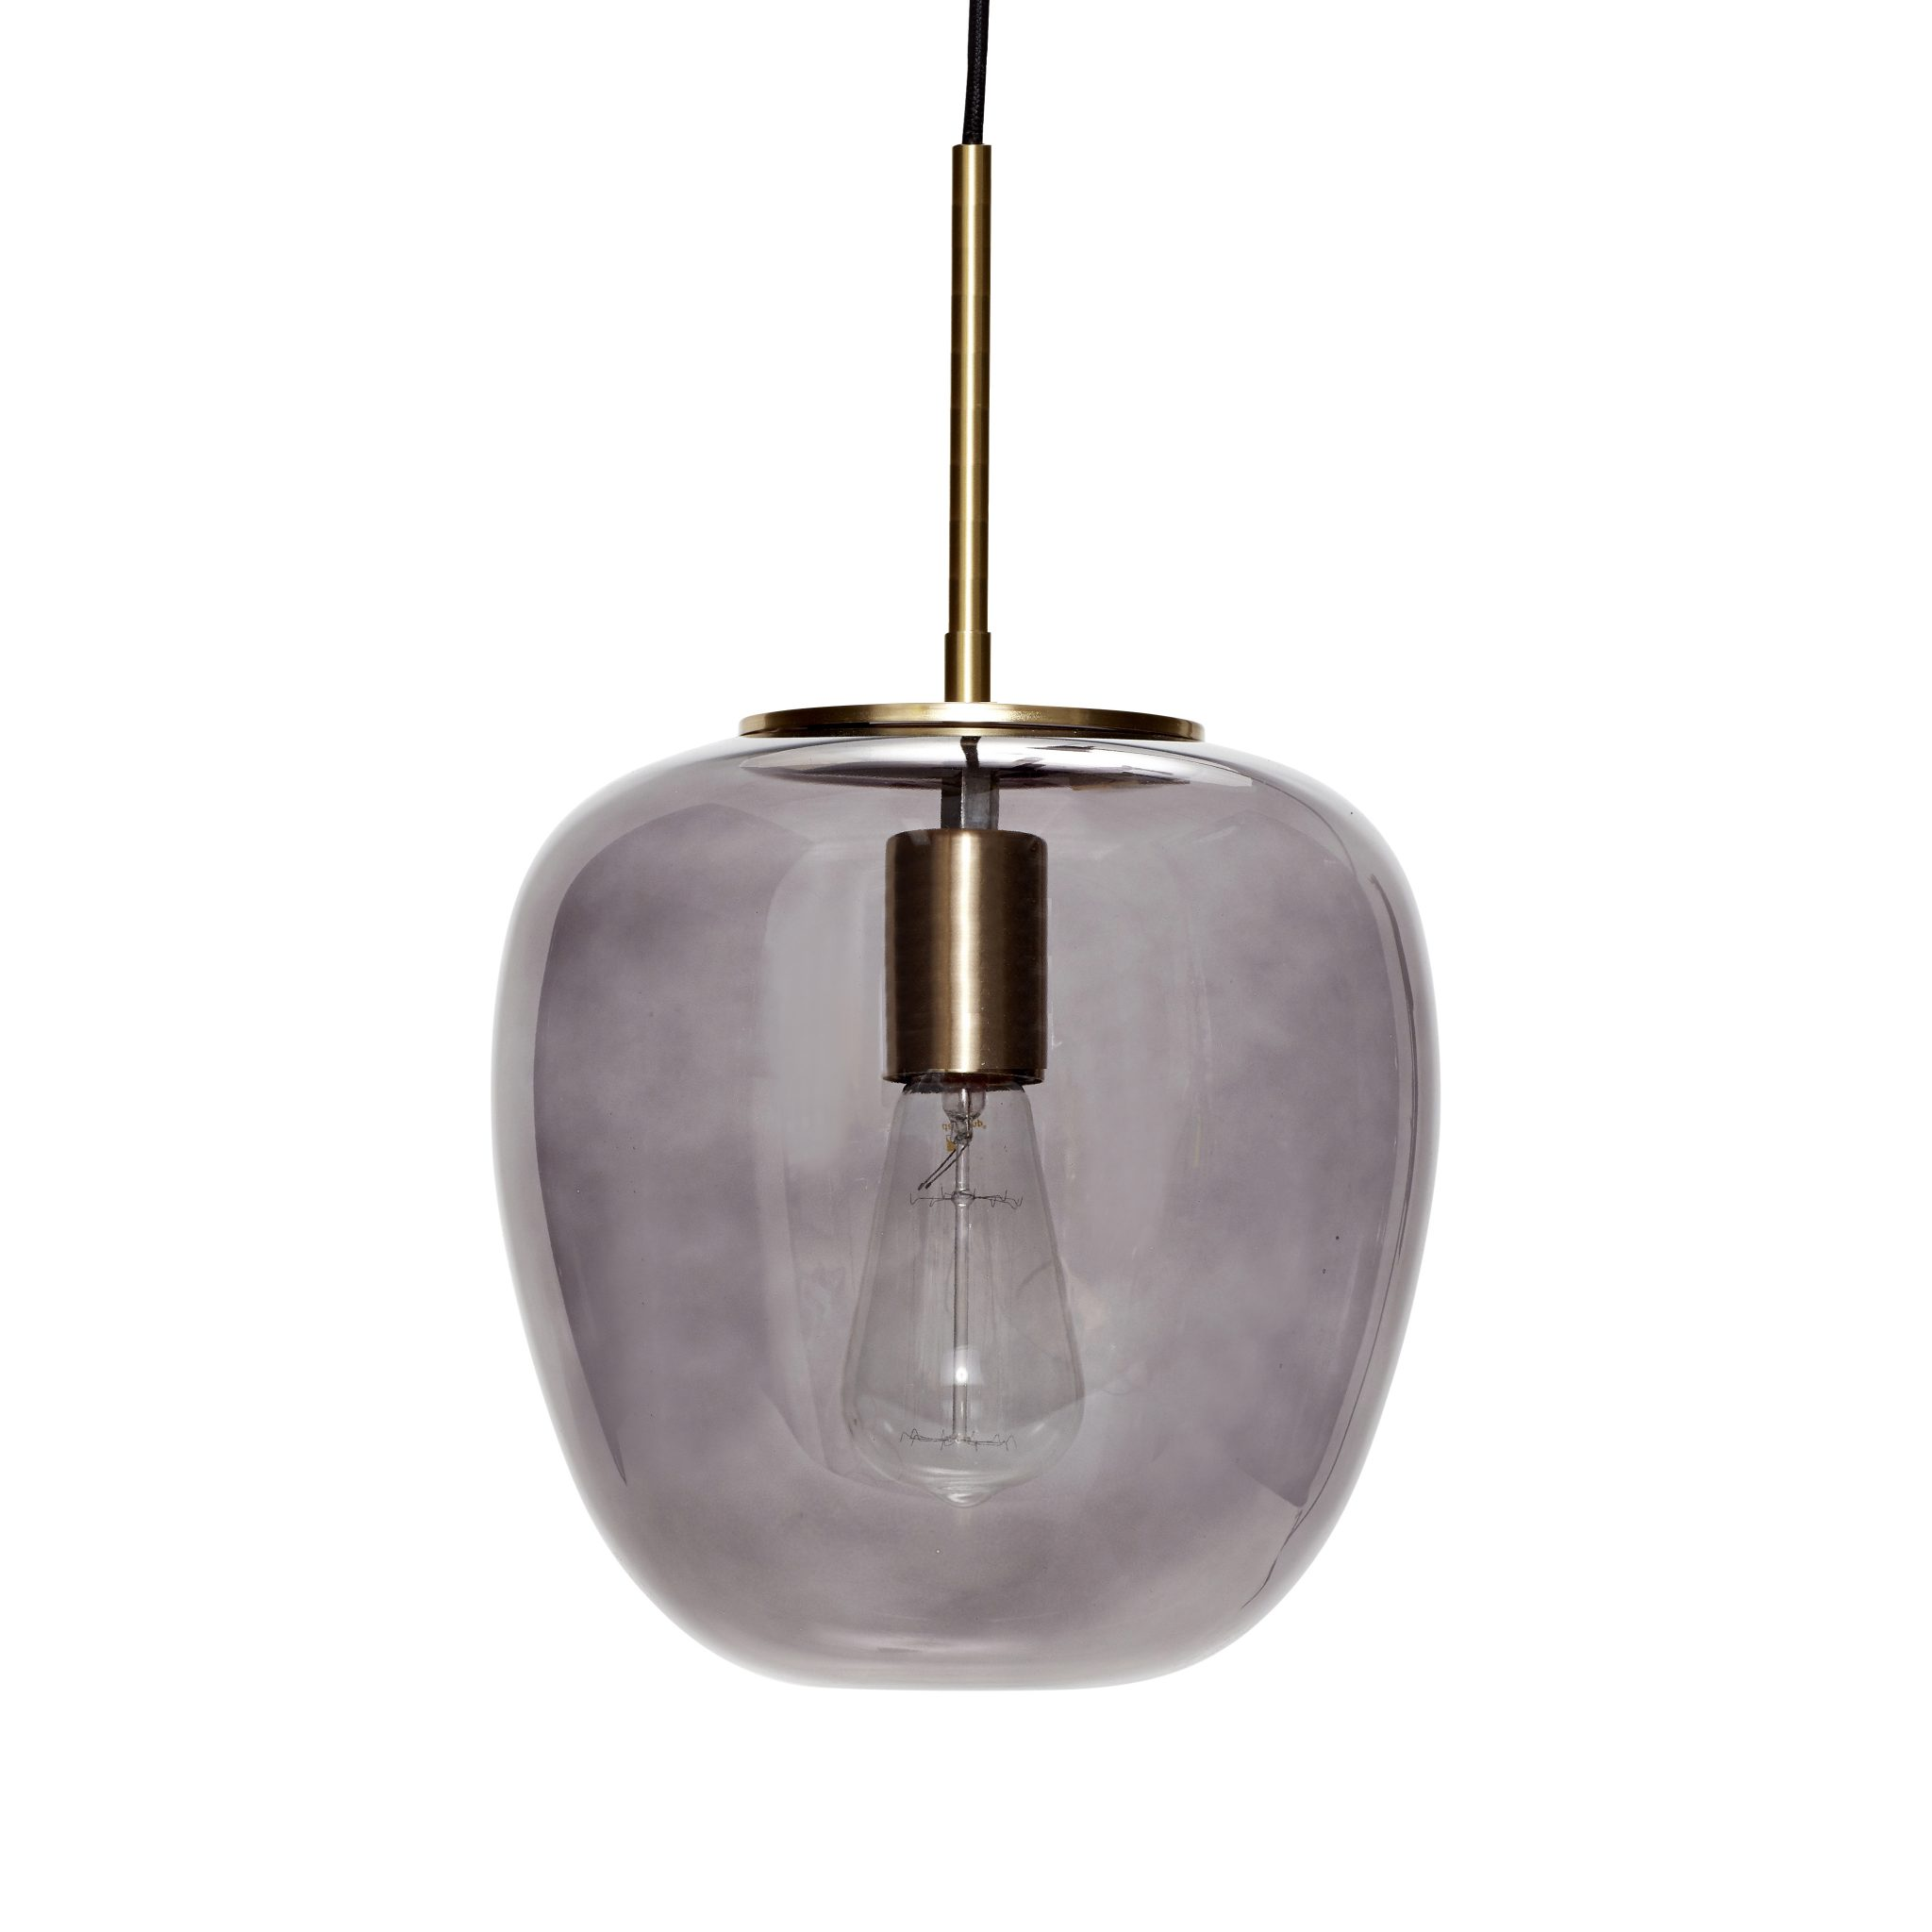 Siste Taklampe - Smoked, glass & messing, small - Palma store GS-42